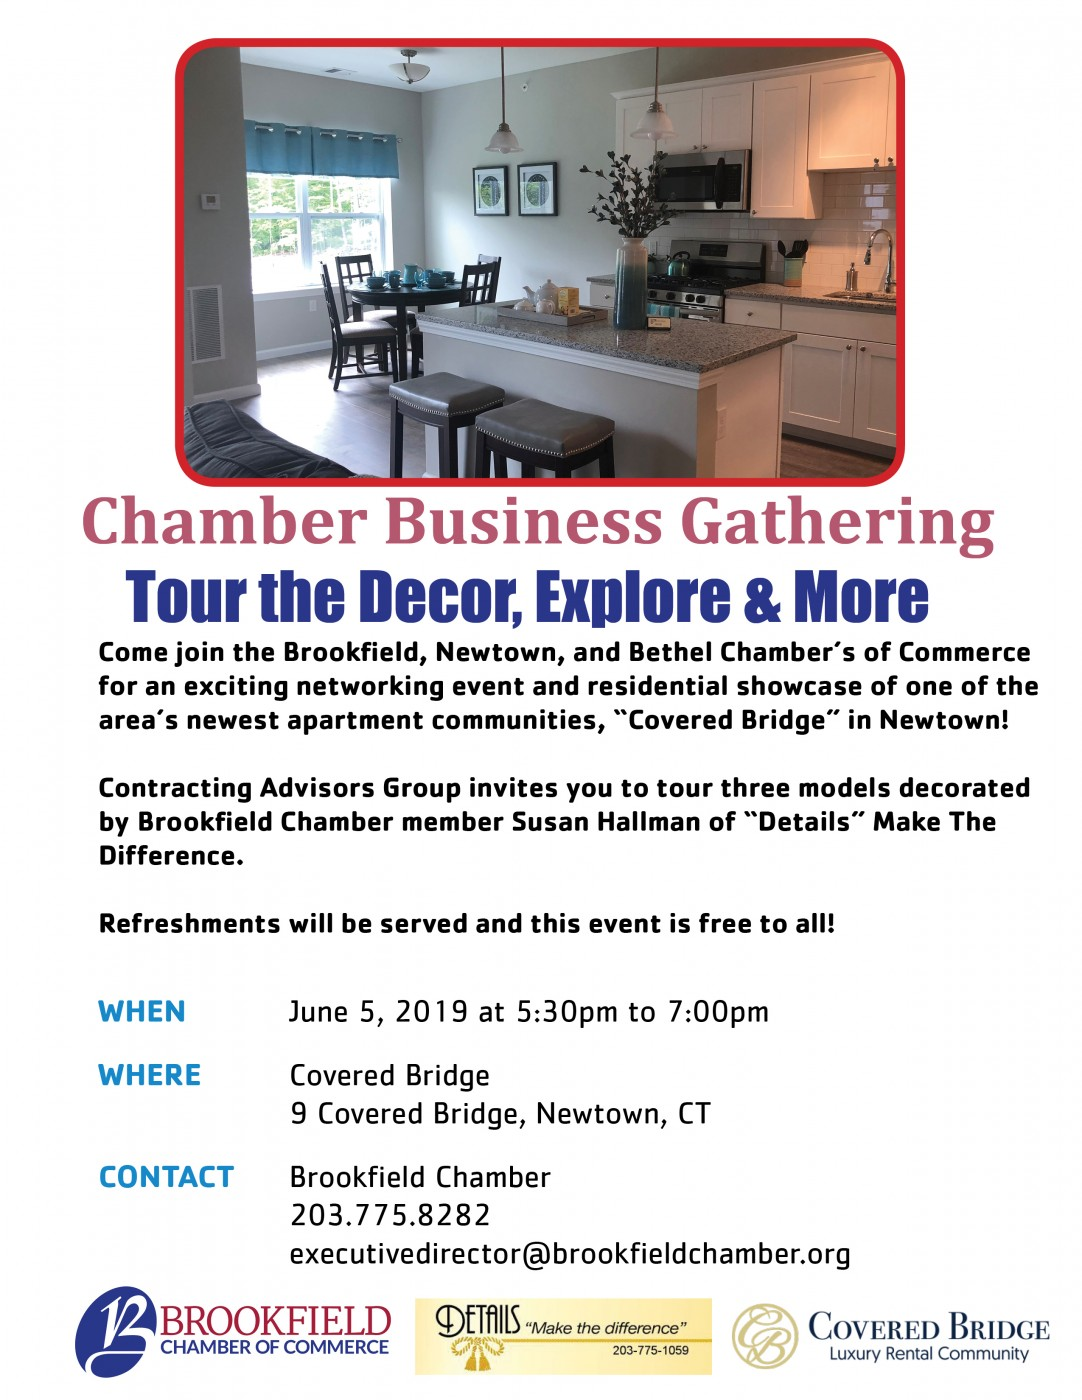 """Tour the Decor & More - Come join the the Chamber of Commerce for an exciting networking event and residential showcase of one of the area's newest apartment communities, """"Covered Bridge"""" in Newtown! Contracting Advisors Group invites you to tour three models decorated by Brookfield Chamber member Susan Hallman of """"Details"""" Make The Difference. Refreshments will be served and this event is free to all!"""